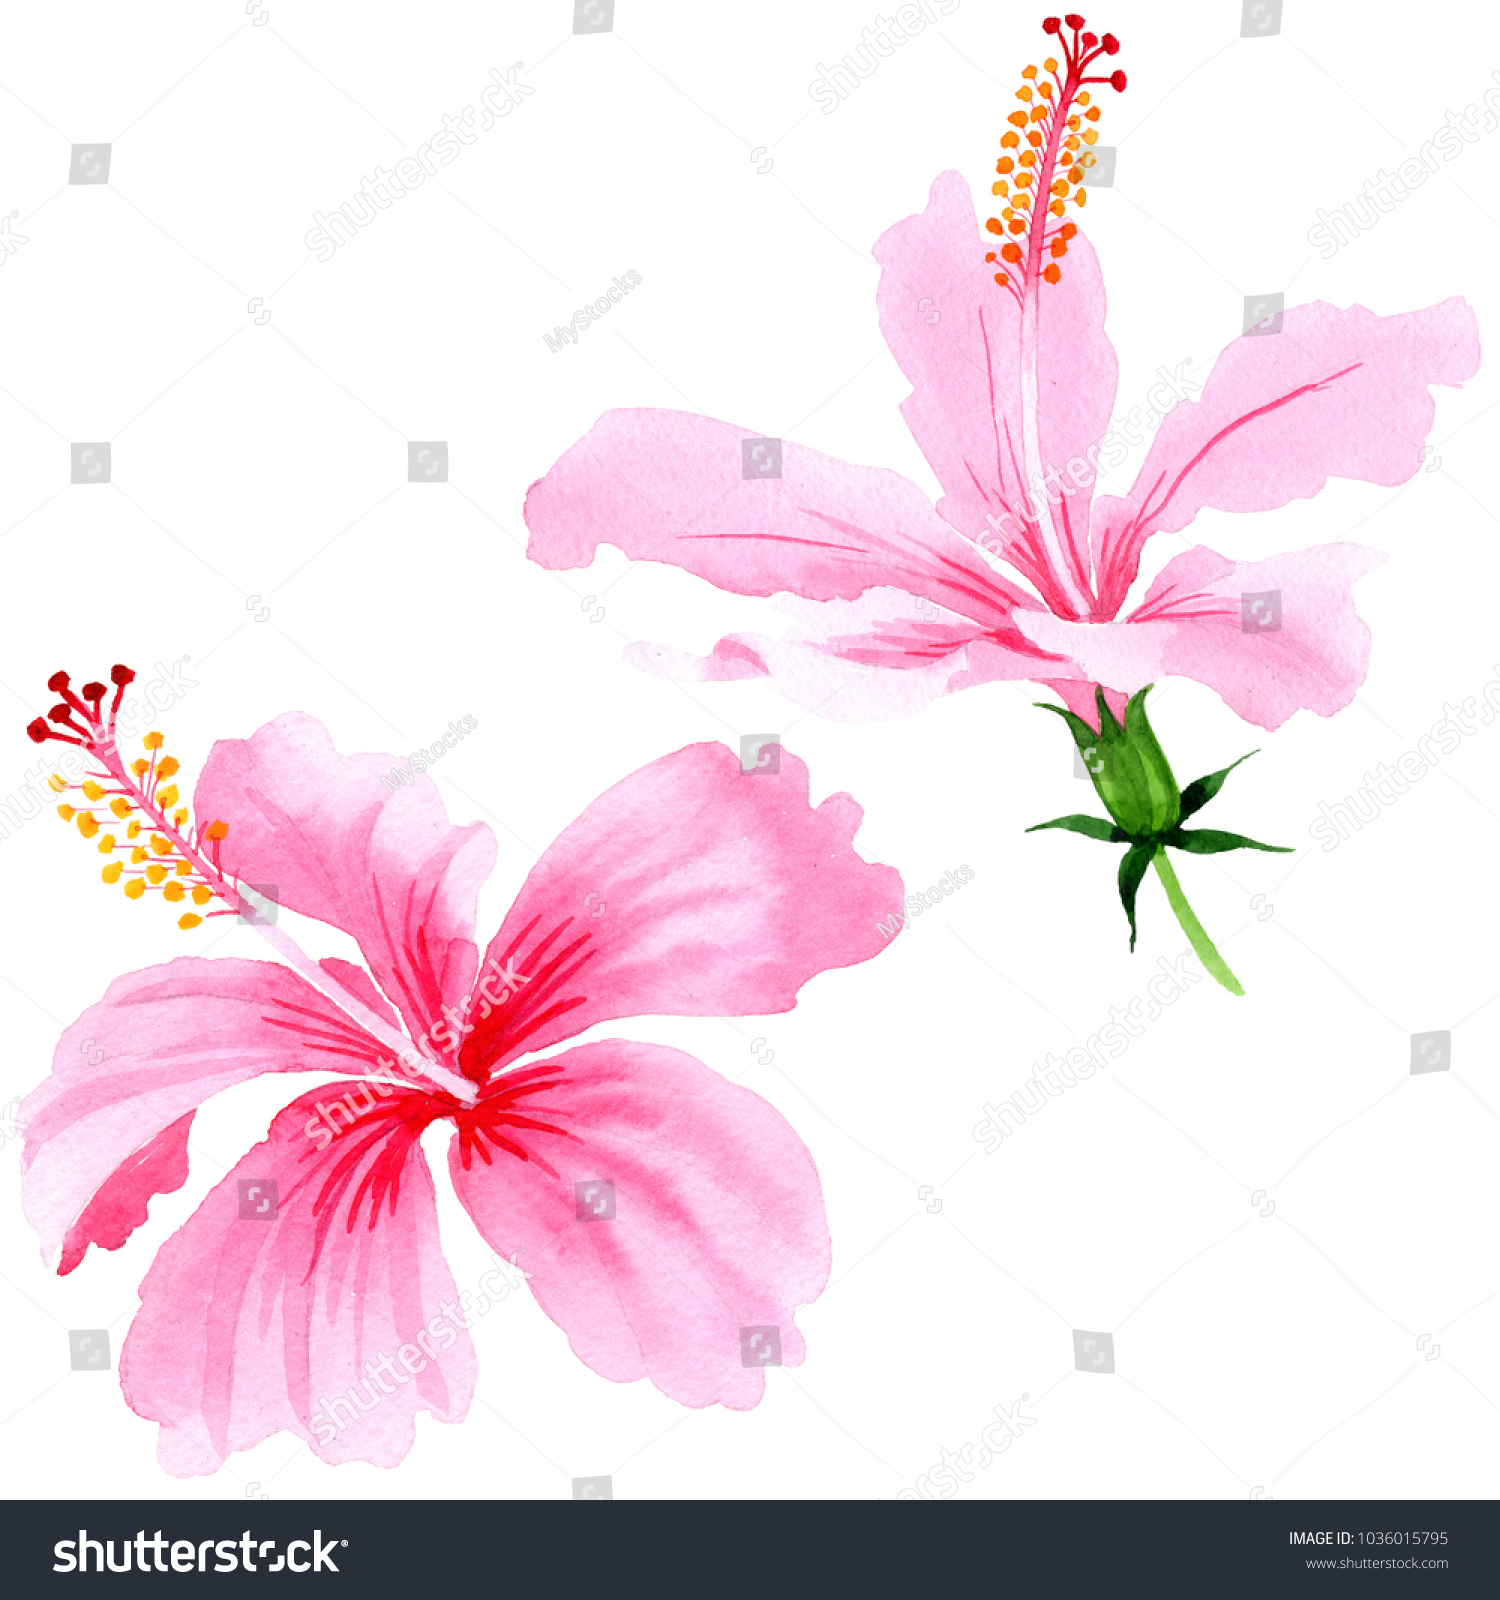 Wildflower hibiscus pink flower in a watercolor style isolated full id 1036015795 izmirmasajfo